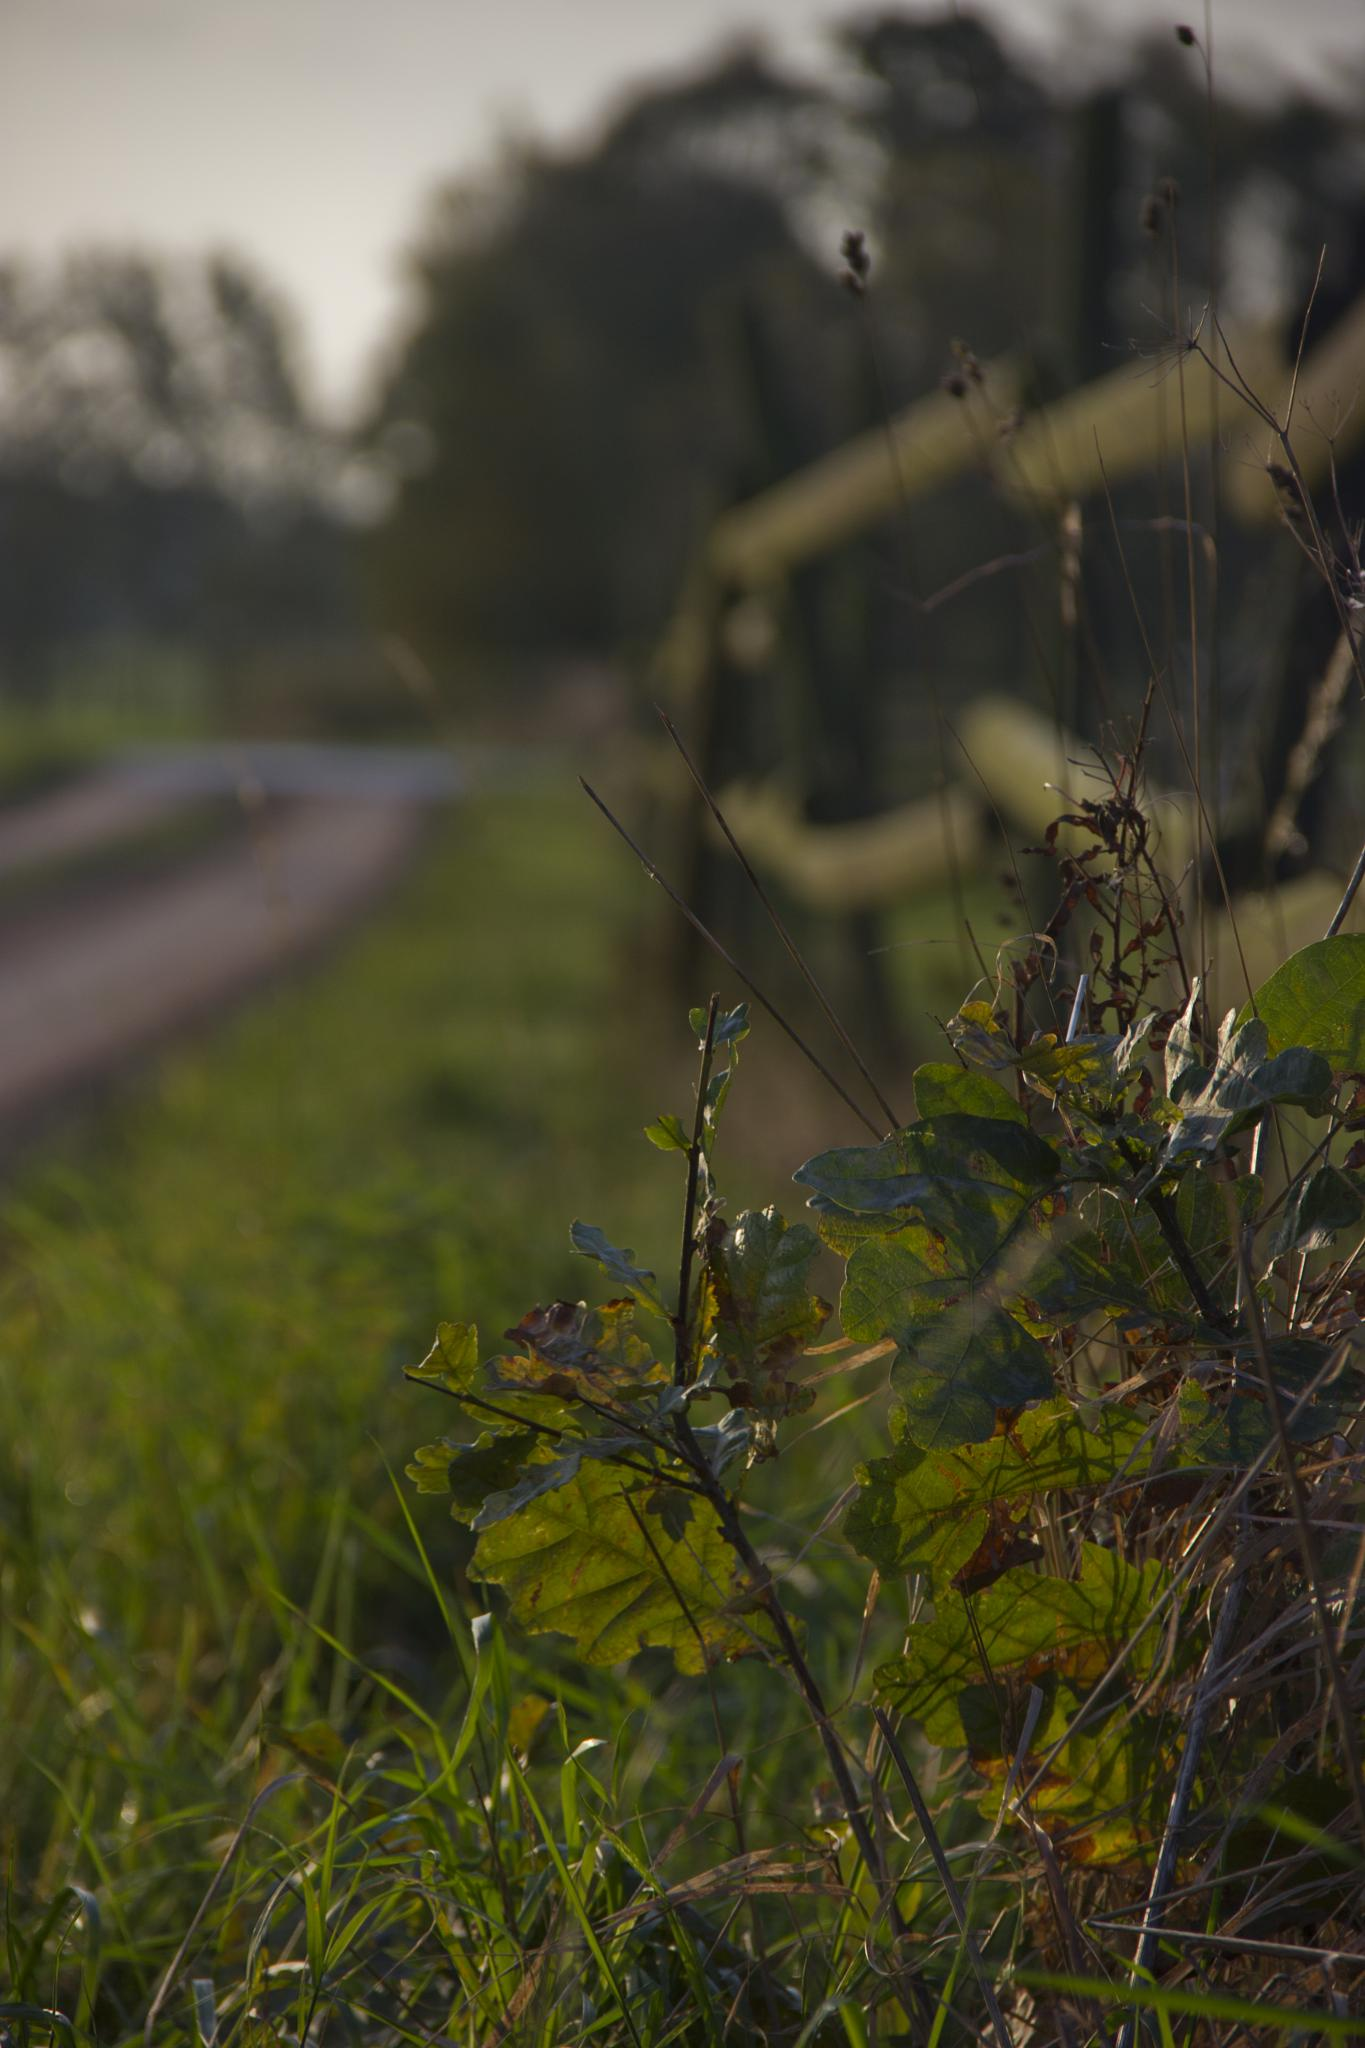 Countryside by mikael.nerberg